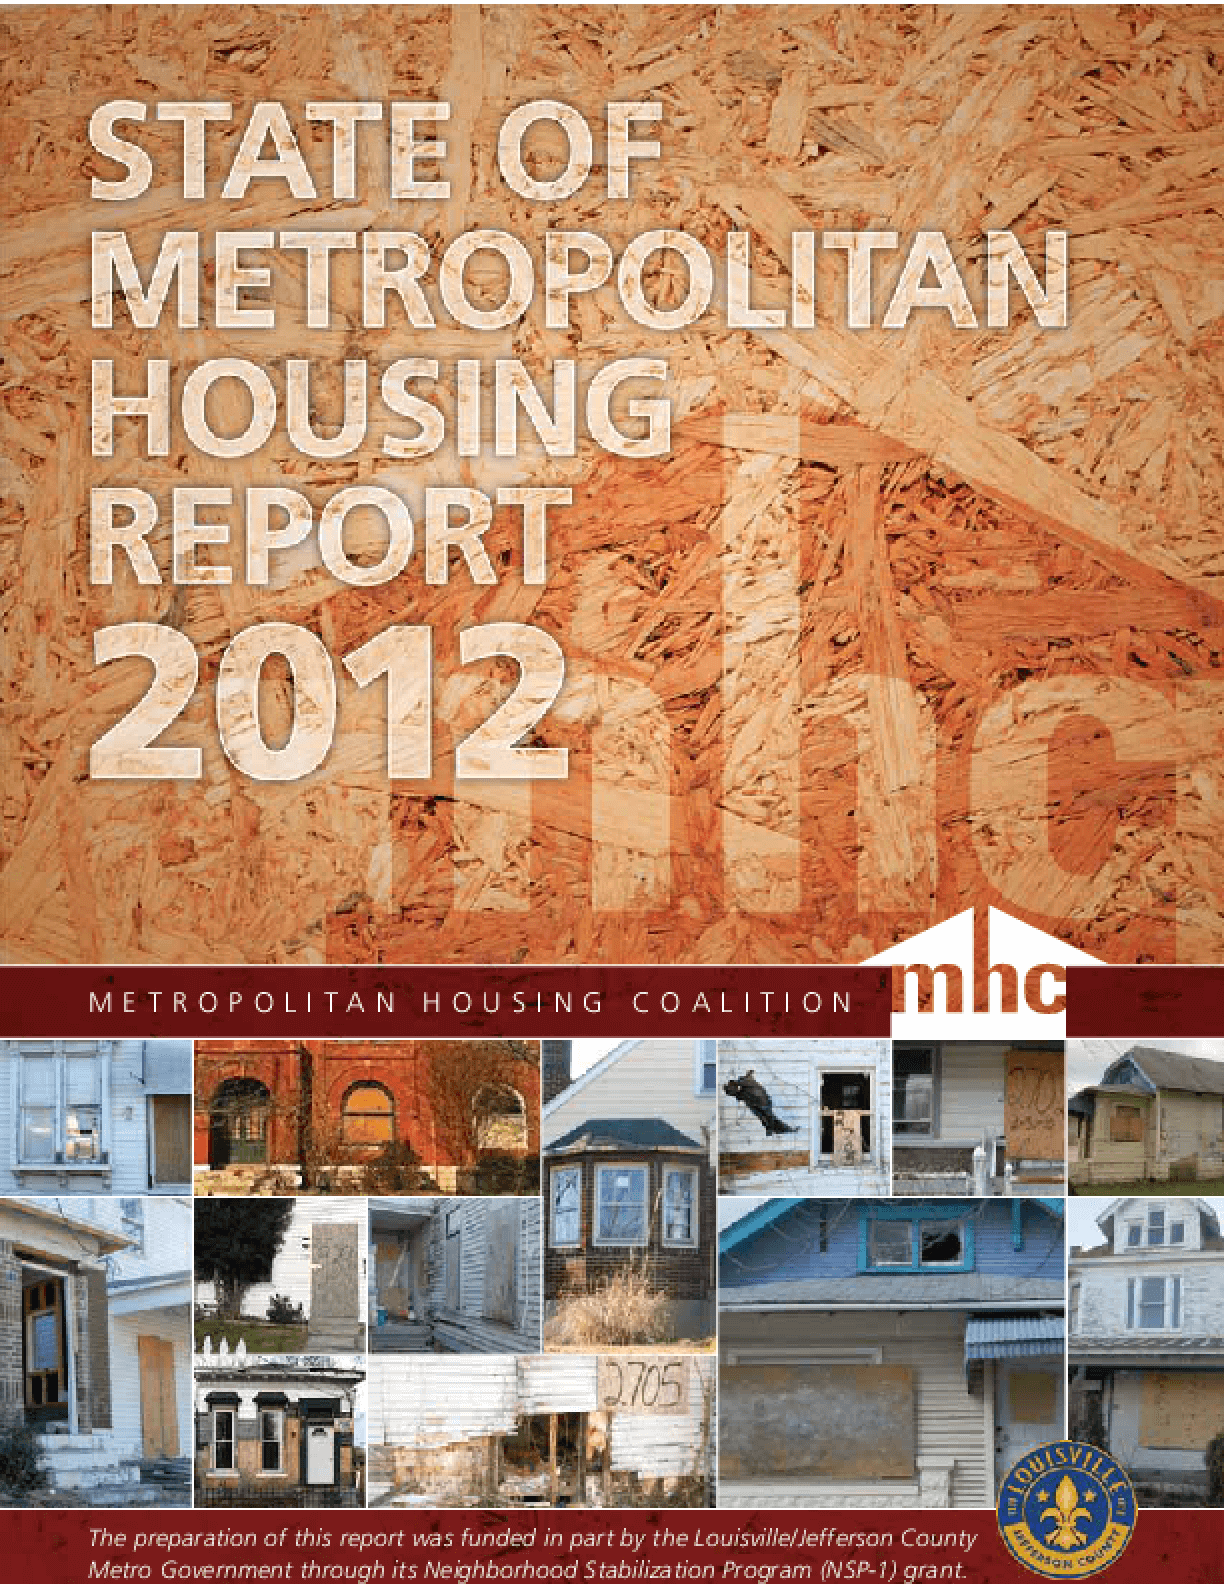 2012 State of Metropolitan Housing Report